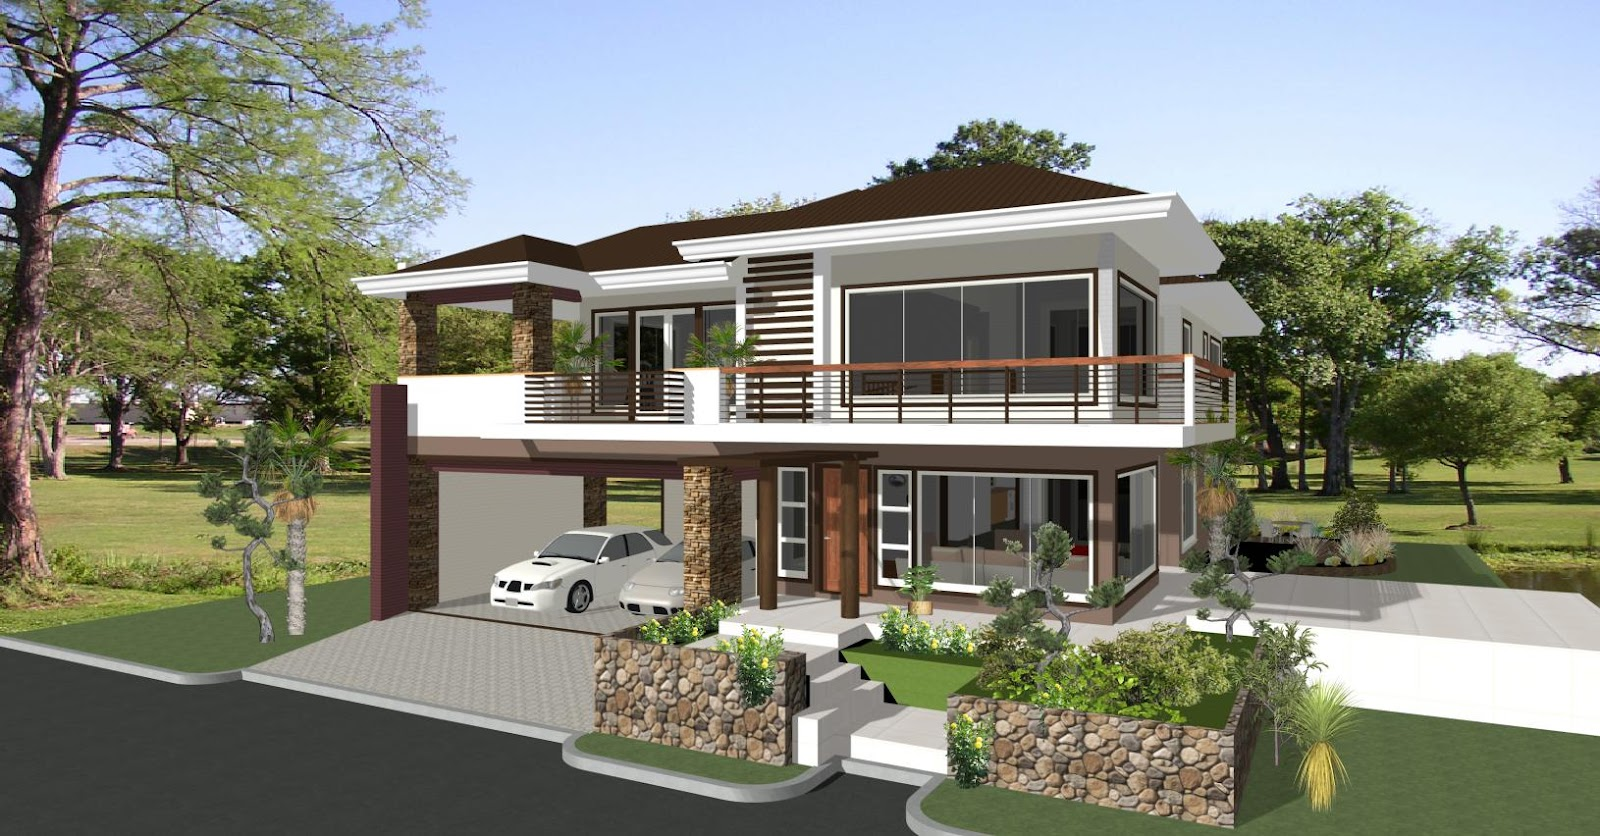 House designs in the philippines in iloilo by erecre group Best modern home plans